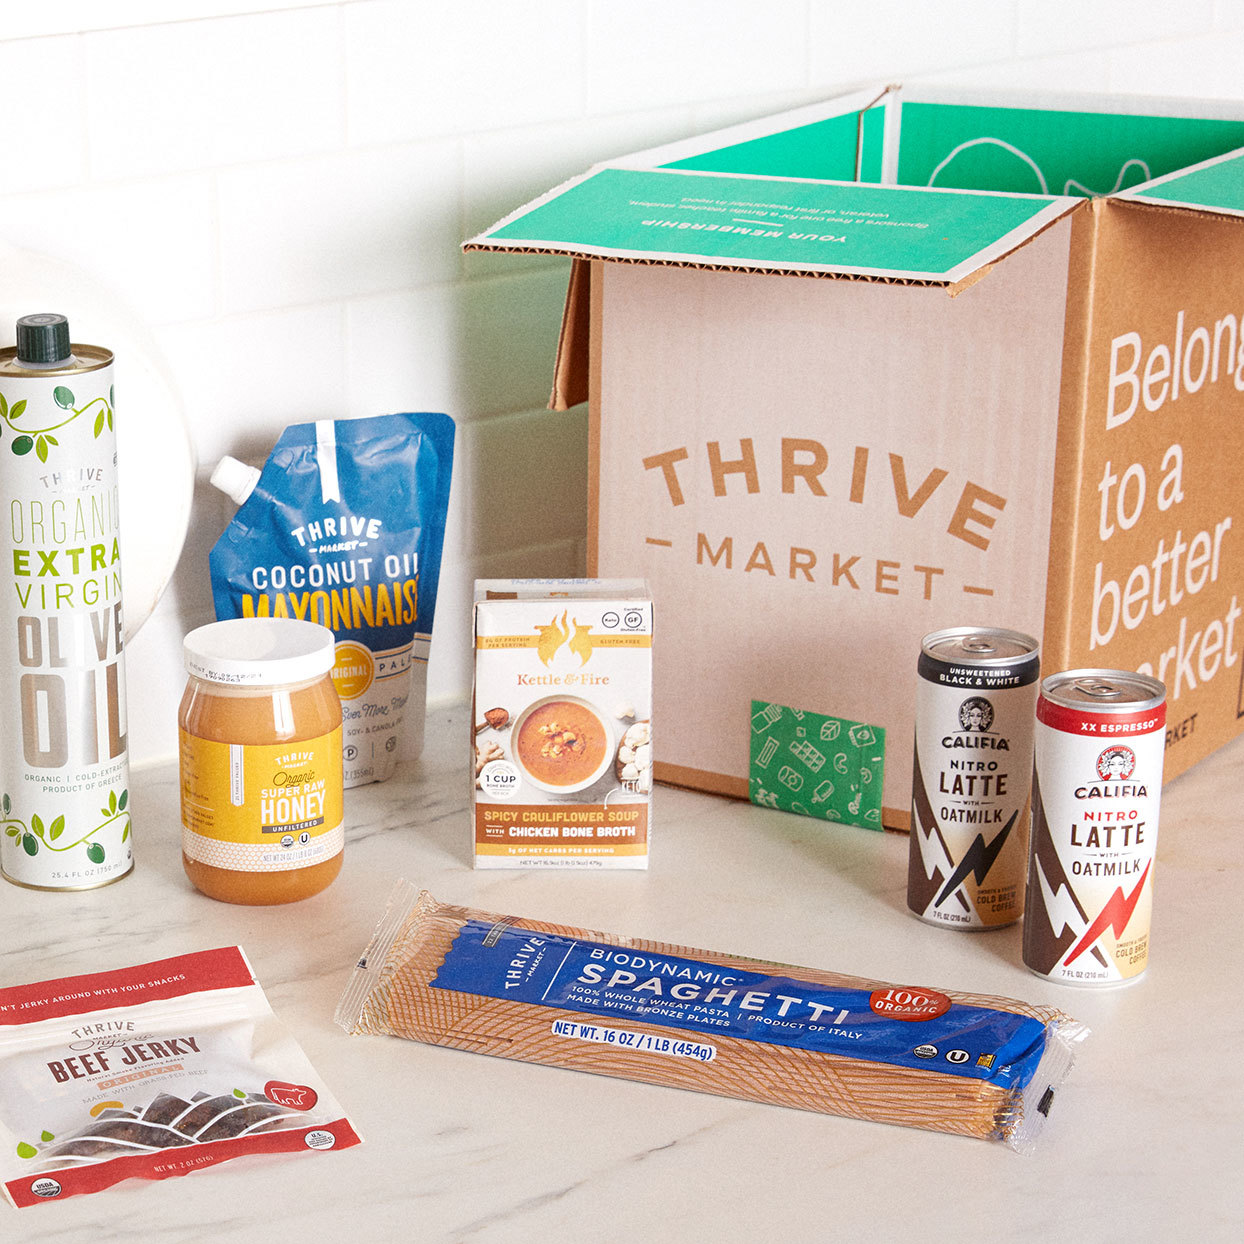 a box from Thrive Market with olive oil, coffee drinks and other products